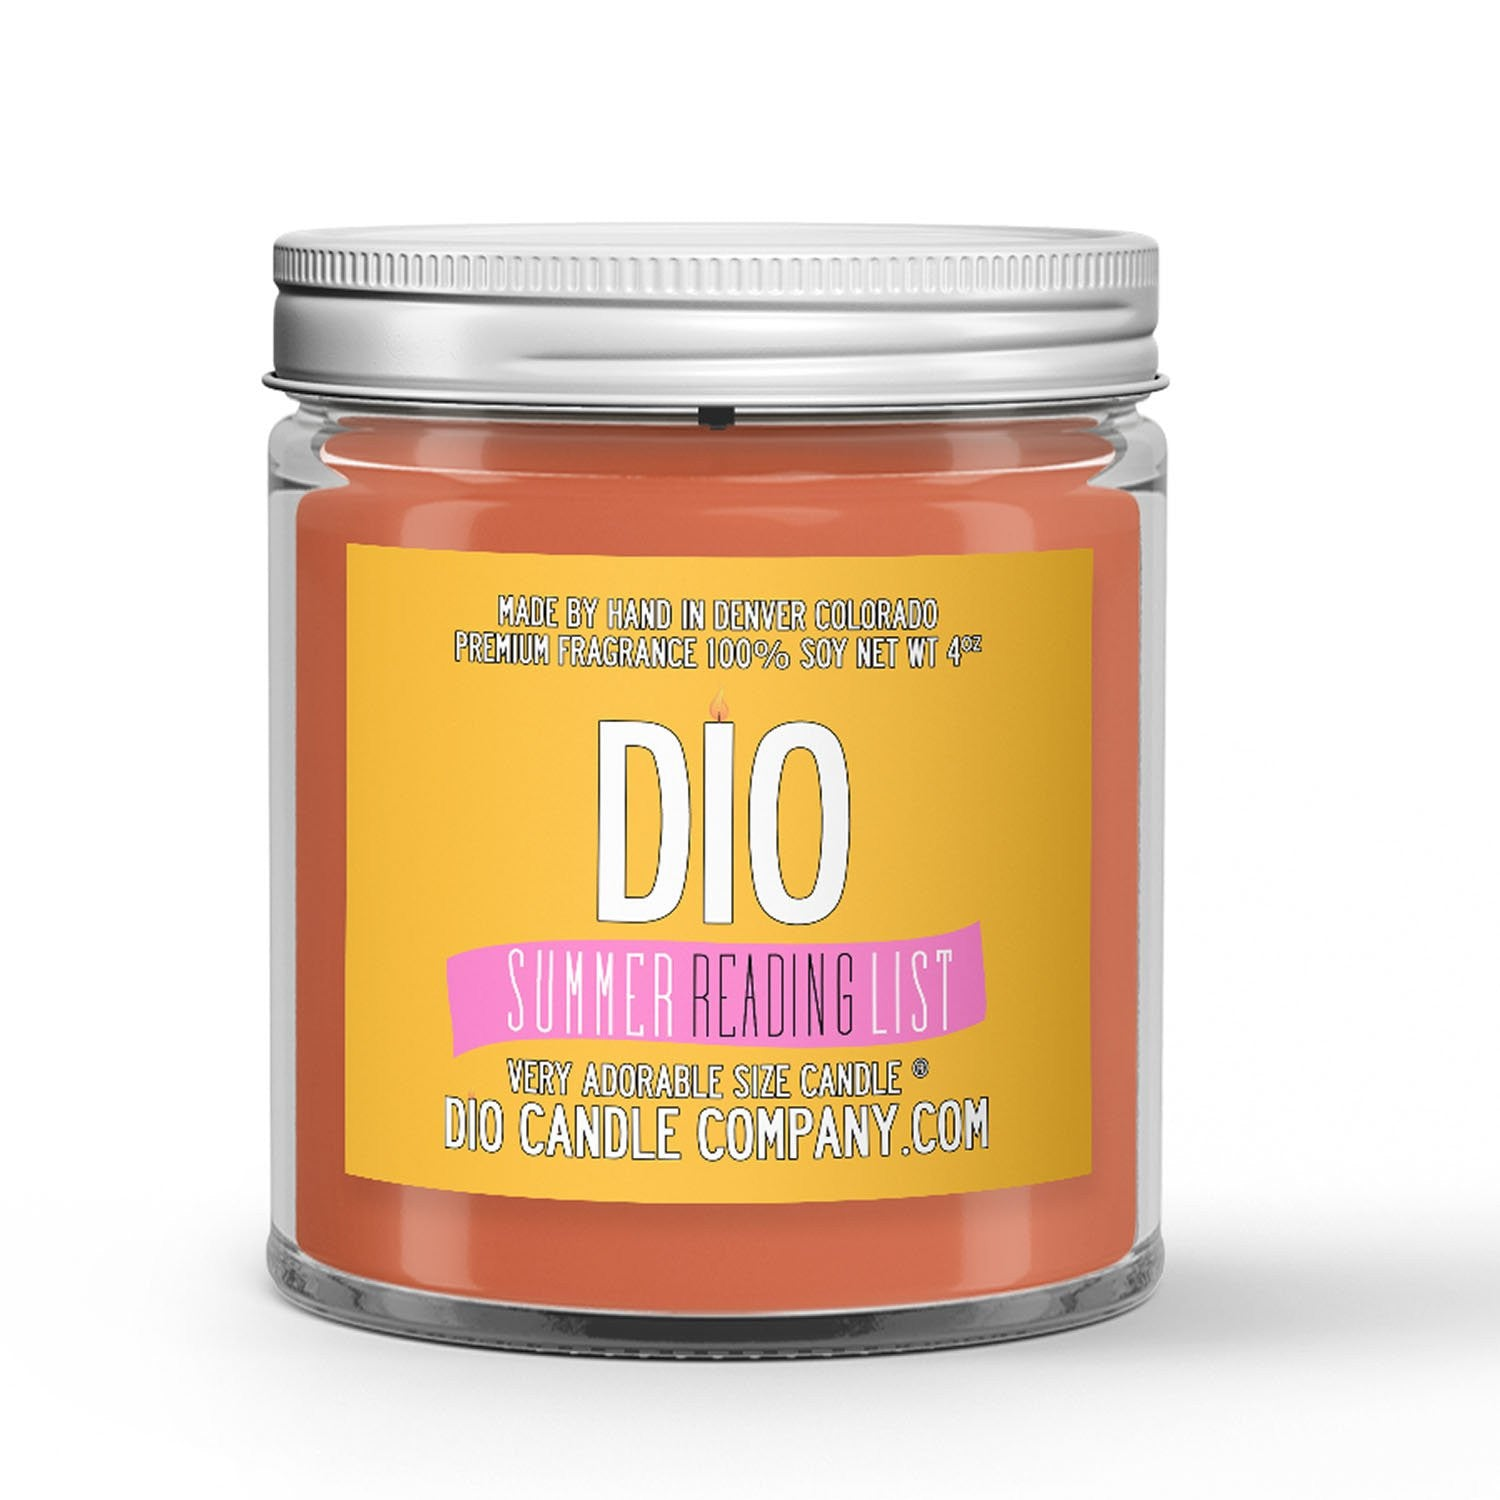 Summer Reading List Candle - Orange Flower - Neroli – Musk - 4oz Very Adorable Size Candle® - Dio Candle Company